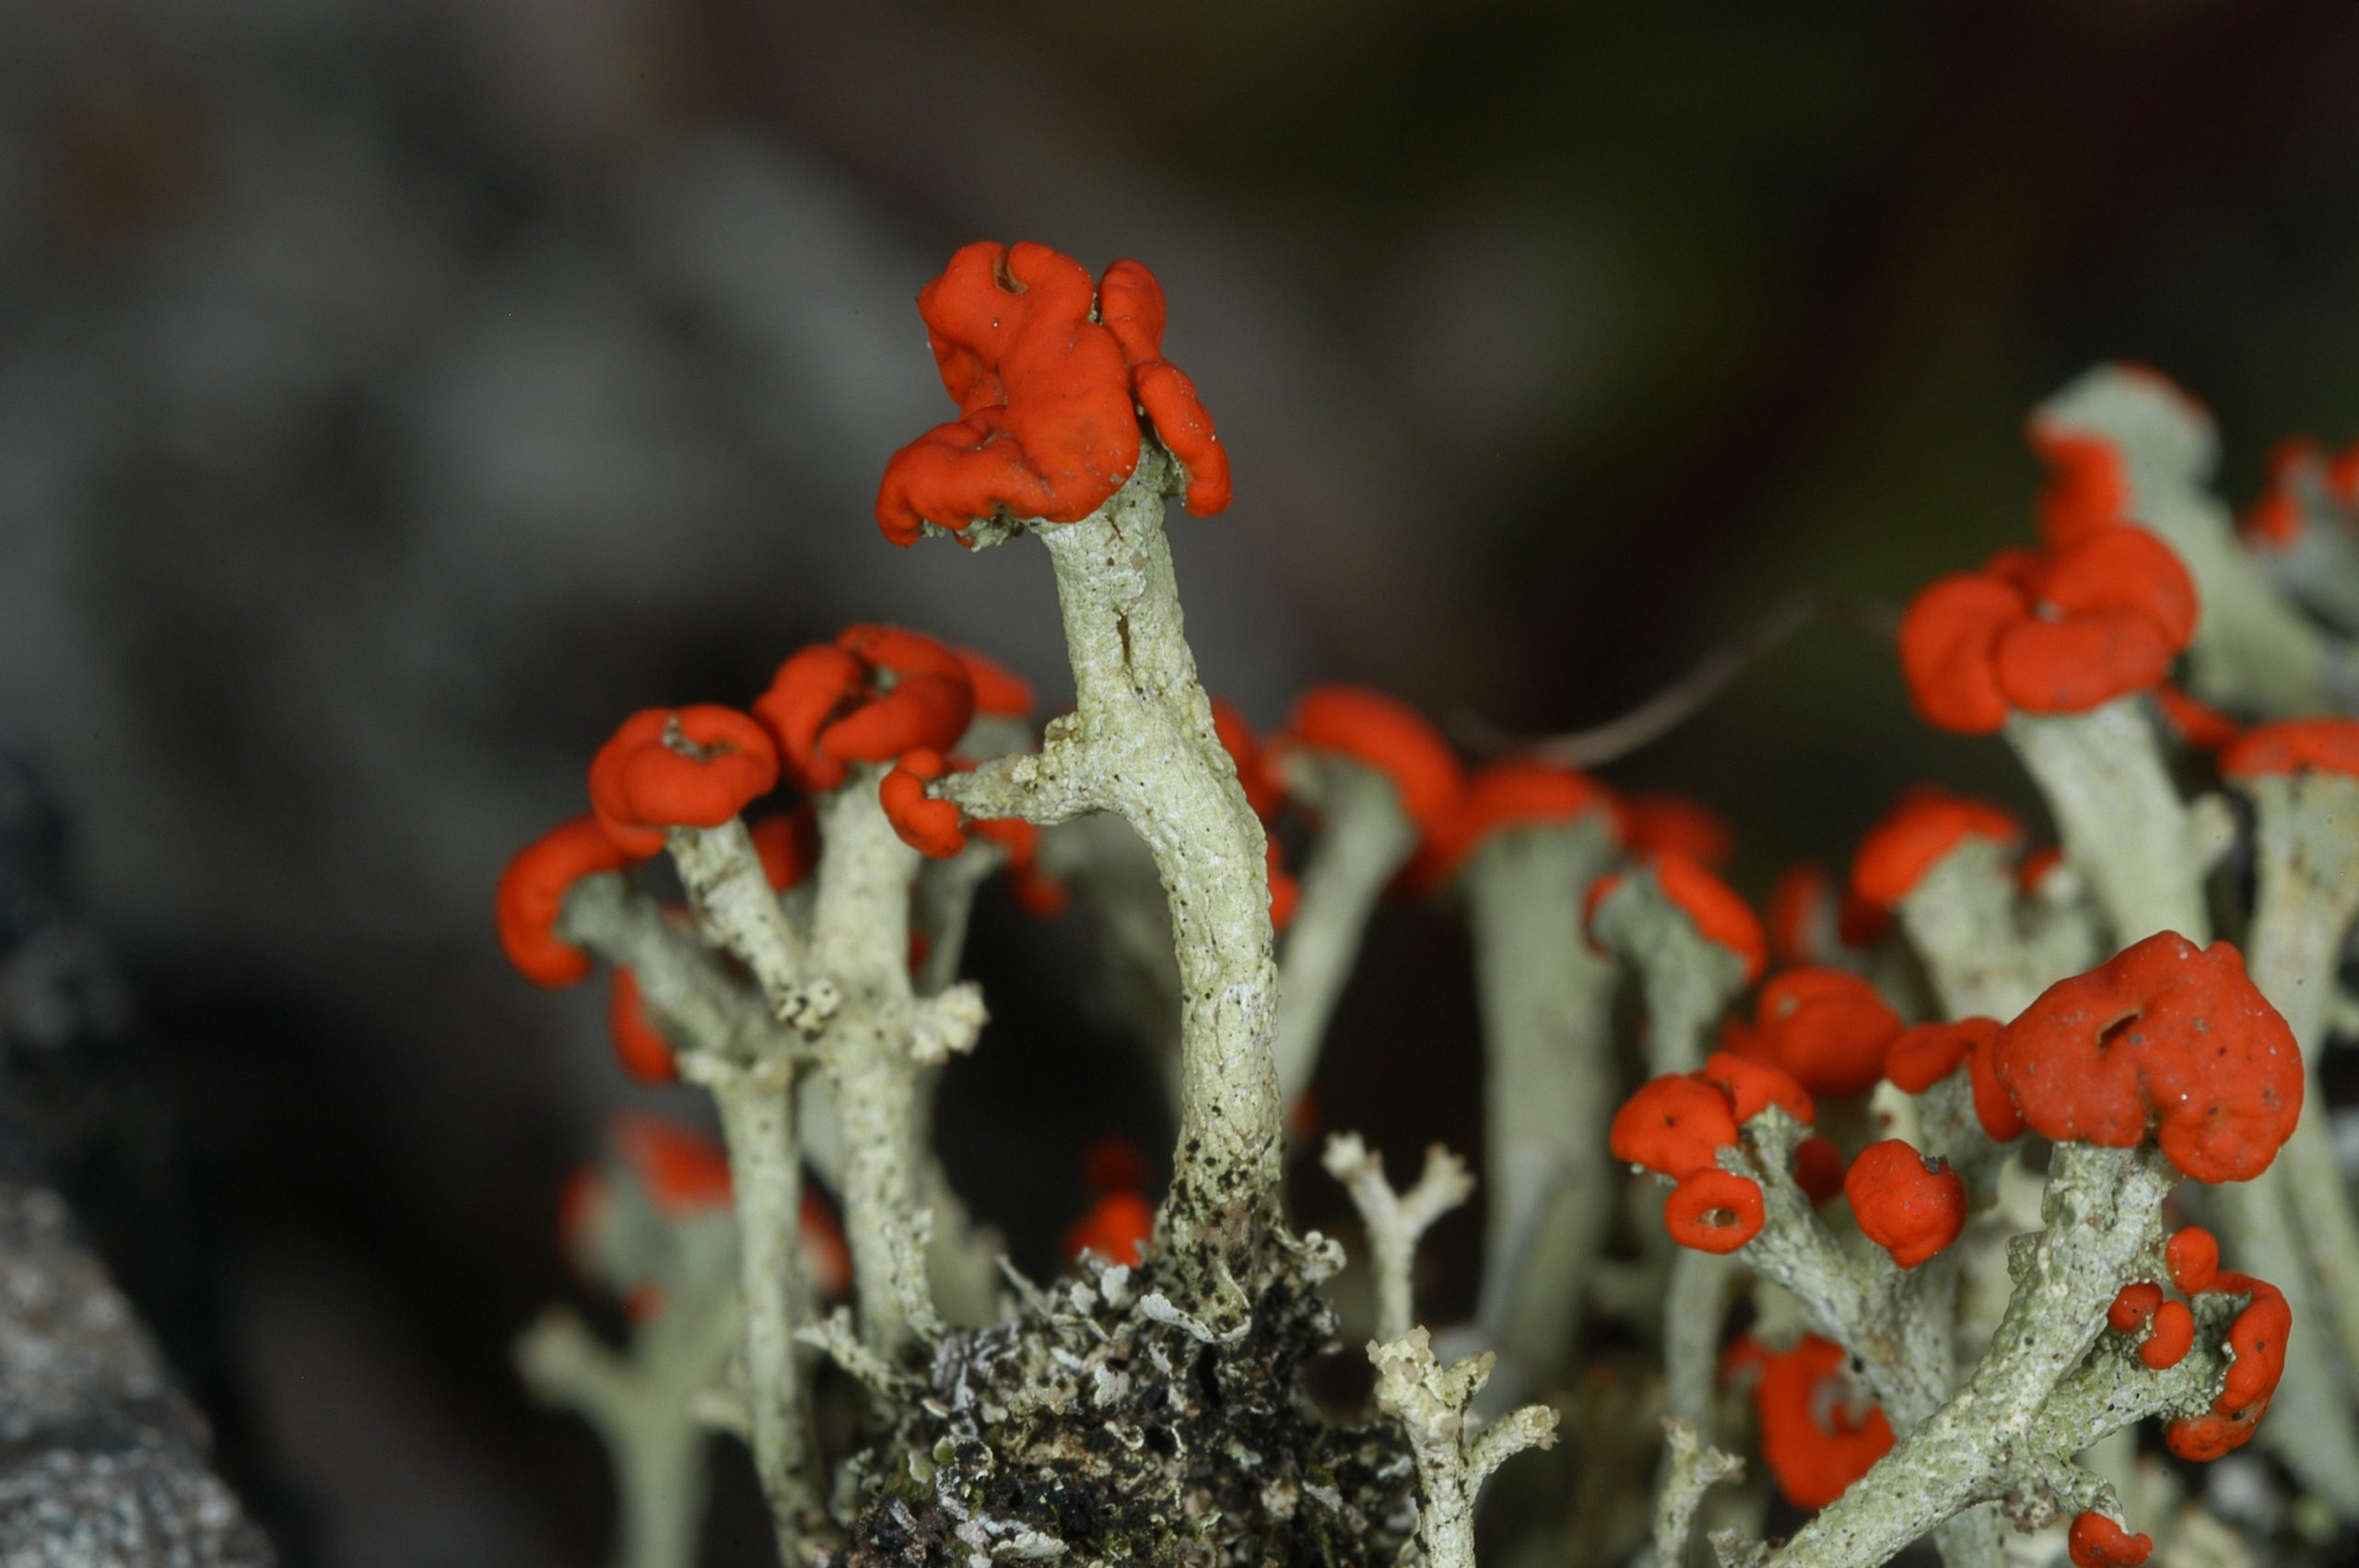 Cladonia cristatella, also known as British Soldiers, one of the iconic lichens of eastern North America.